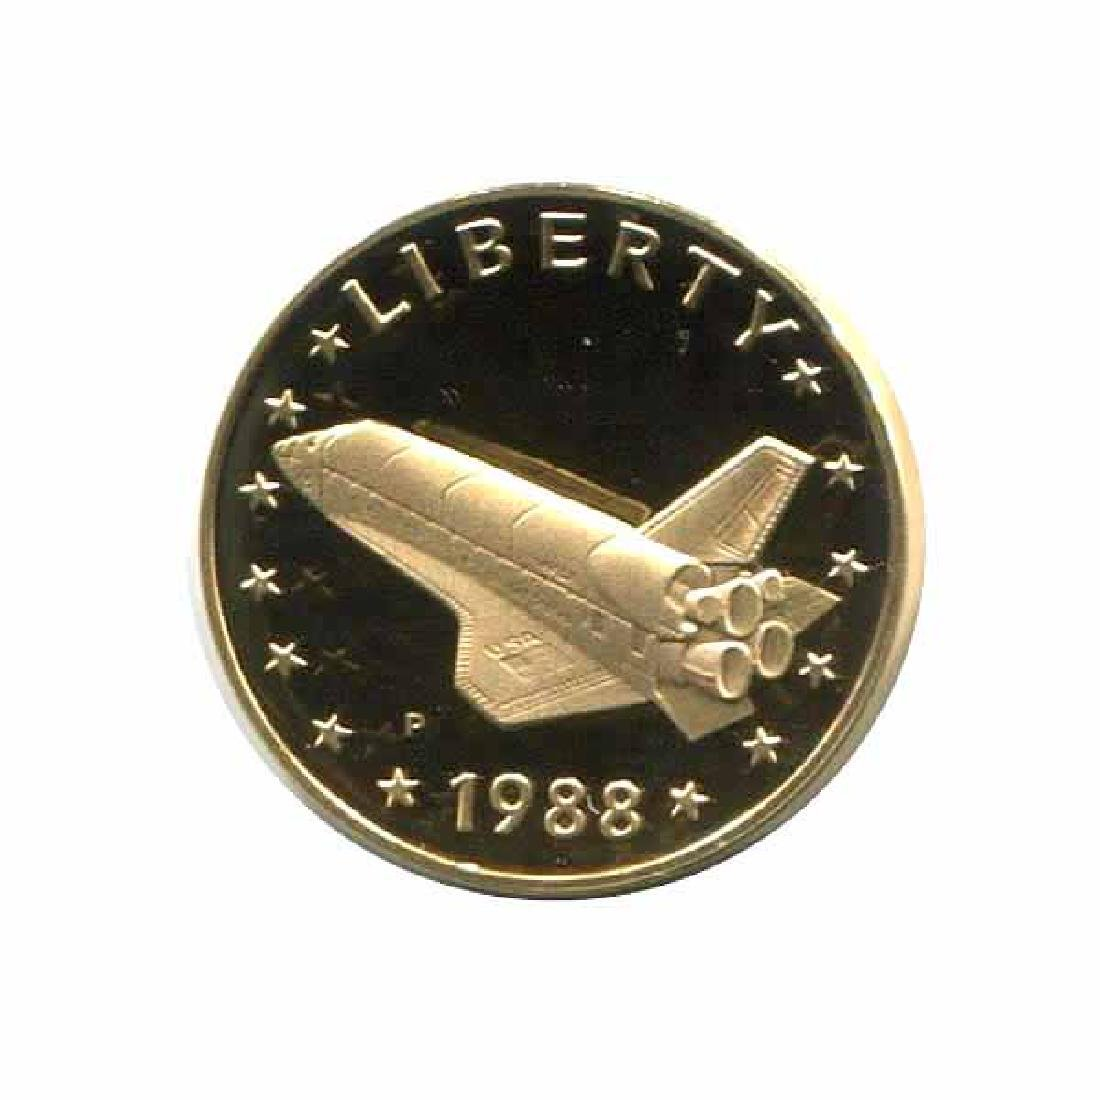 1988 America in Space gold medal PF